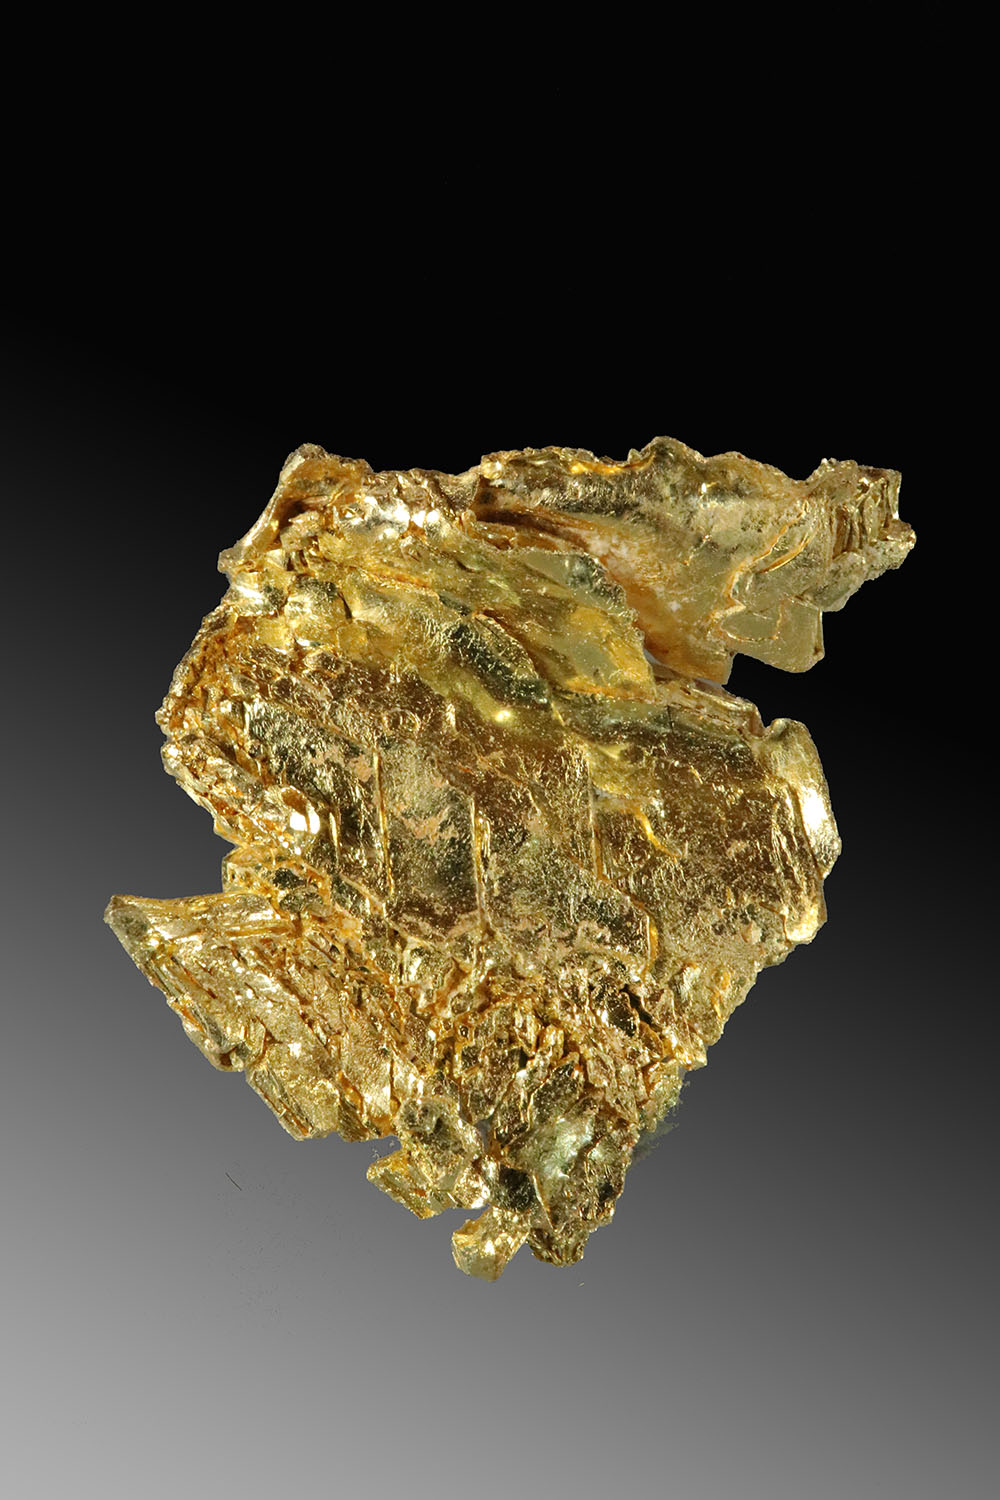 Wavy Leaf Gold - Buttery Yellow Gold Crystal Specimen